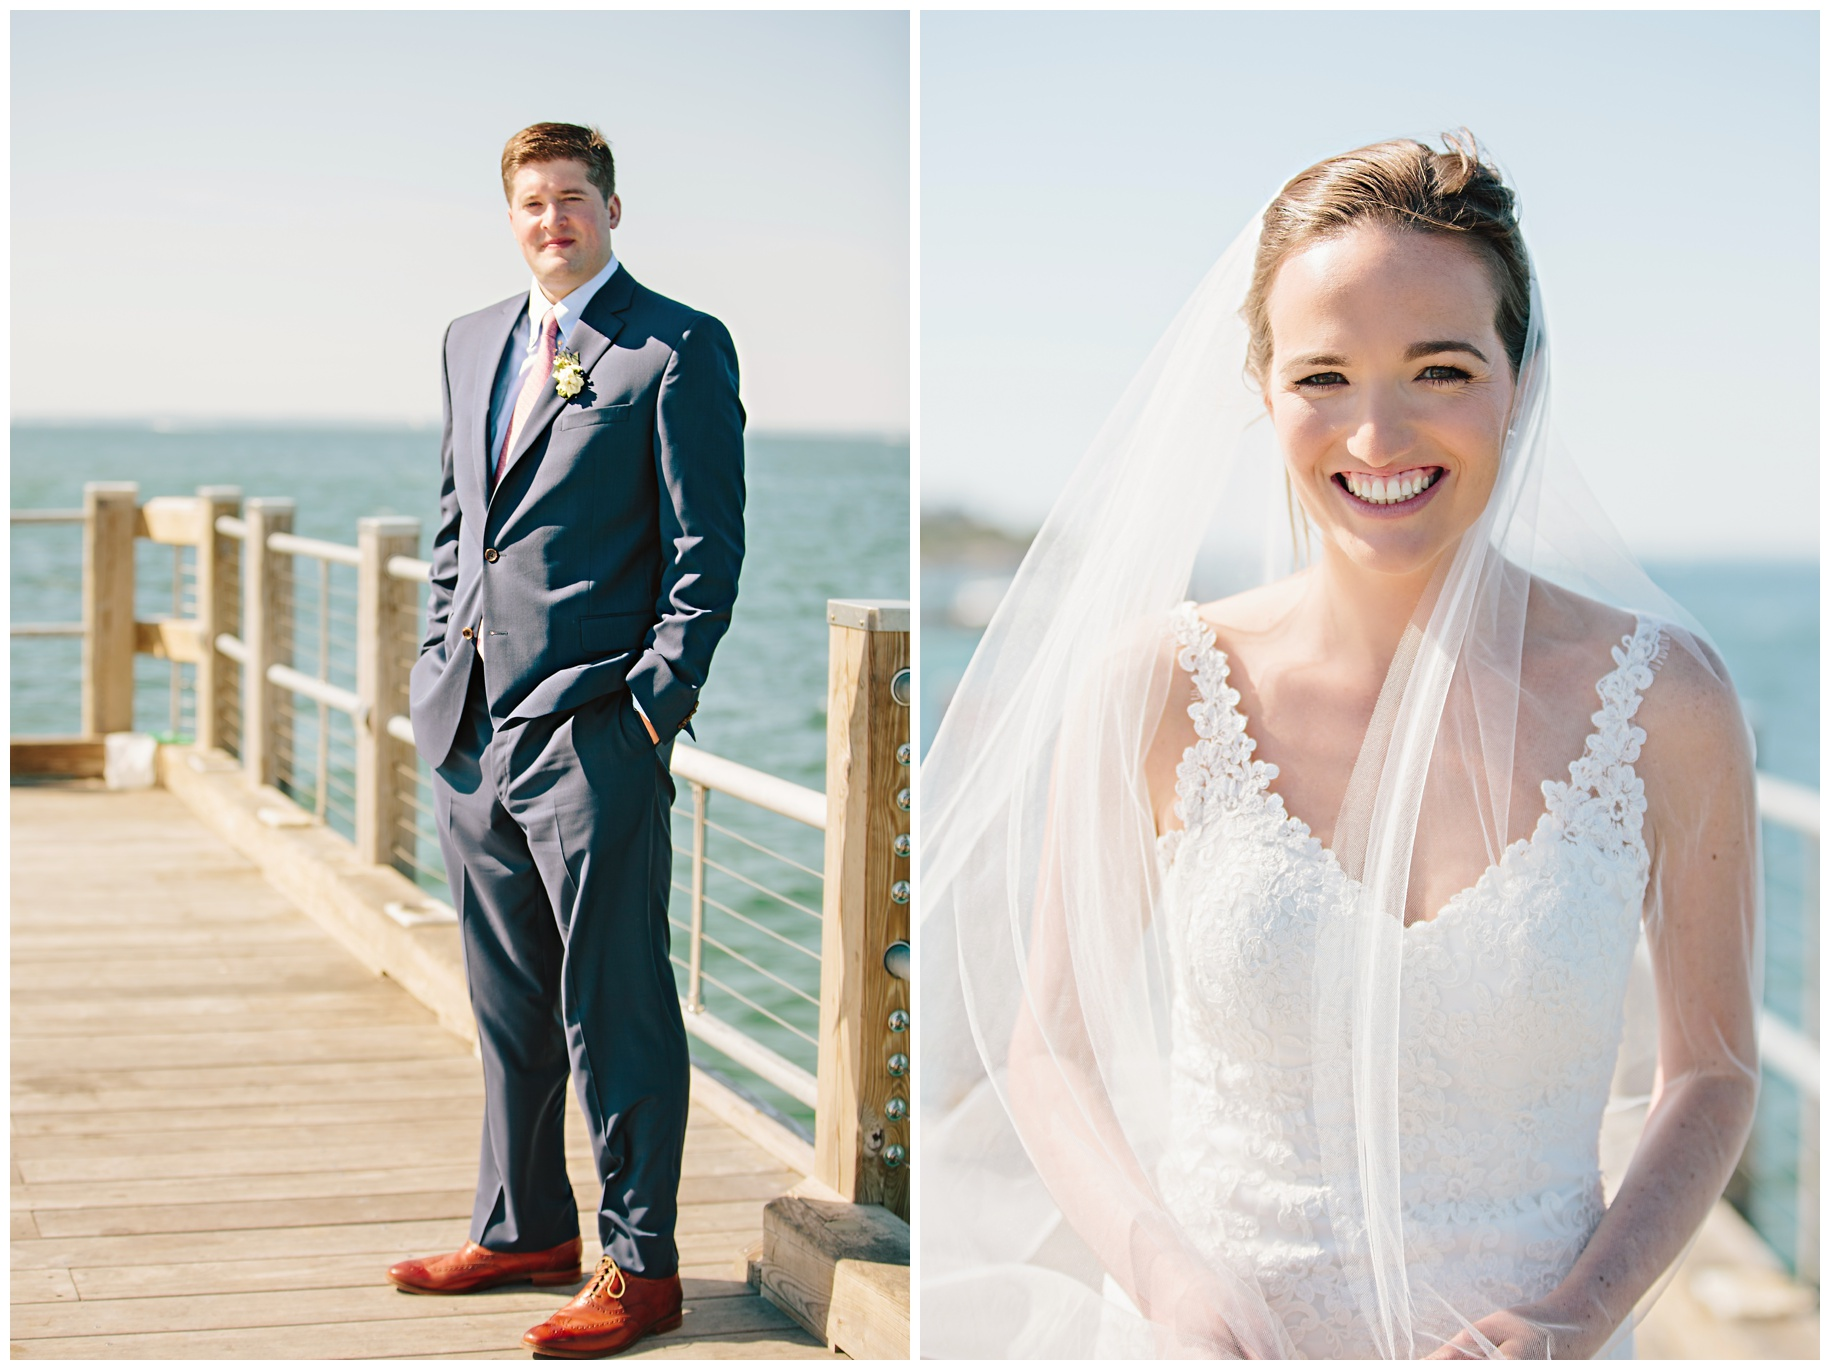 maineweddingphotographer_massachusetts_marthasvineyard_island_newengland-036